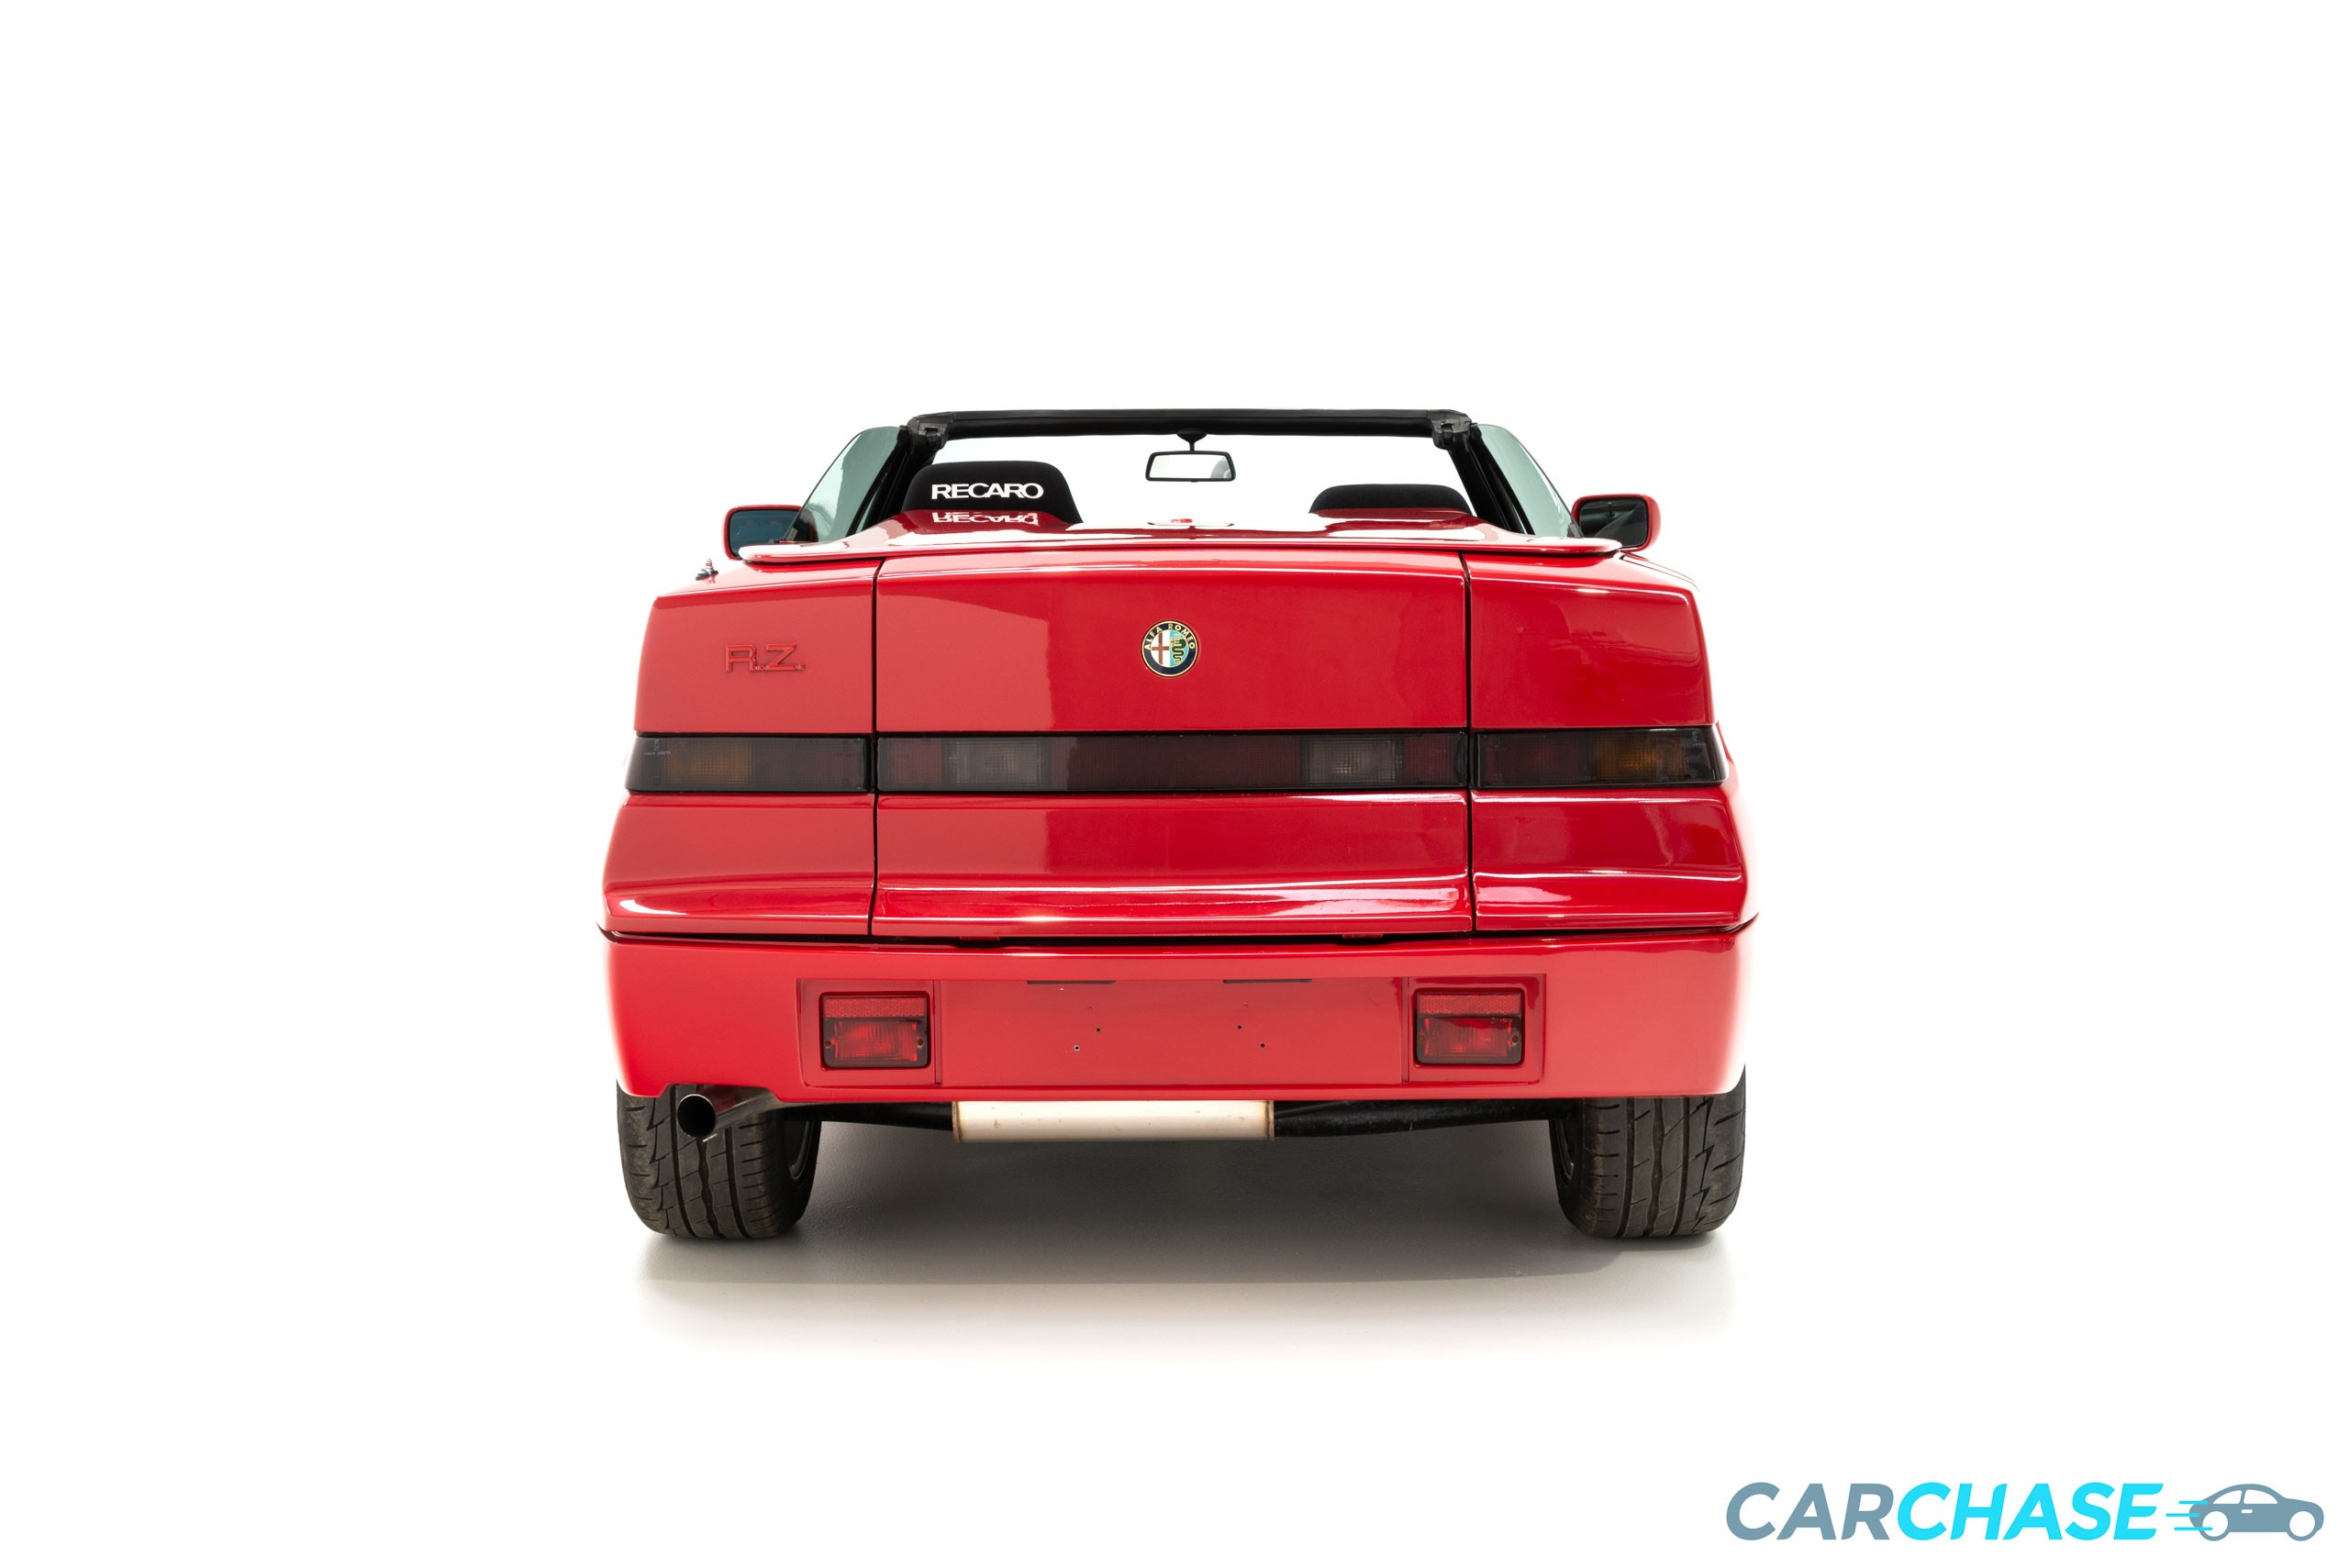 Image of rear profile of 1993 Alfa Romeo Zagato RZ